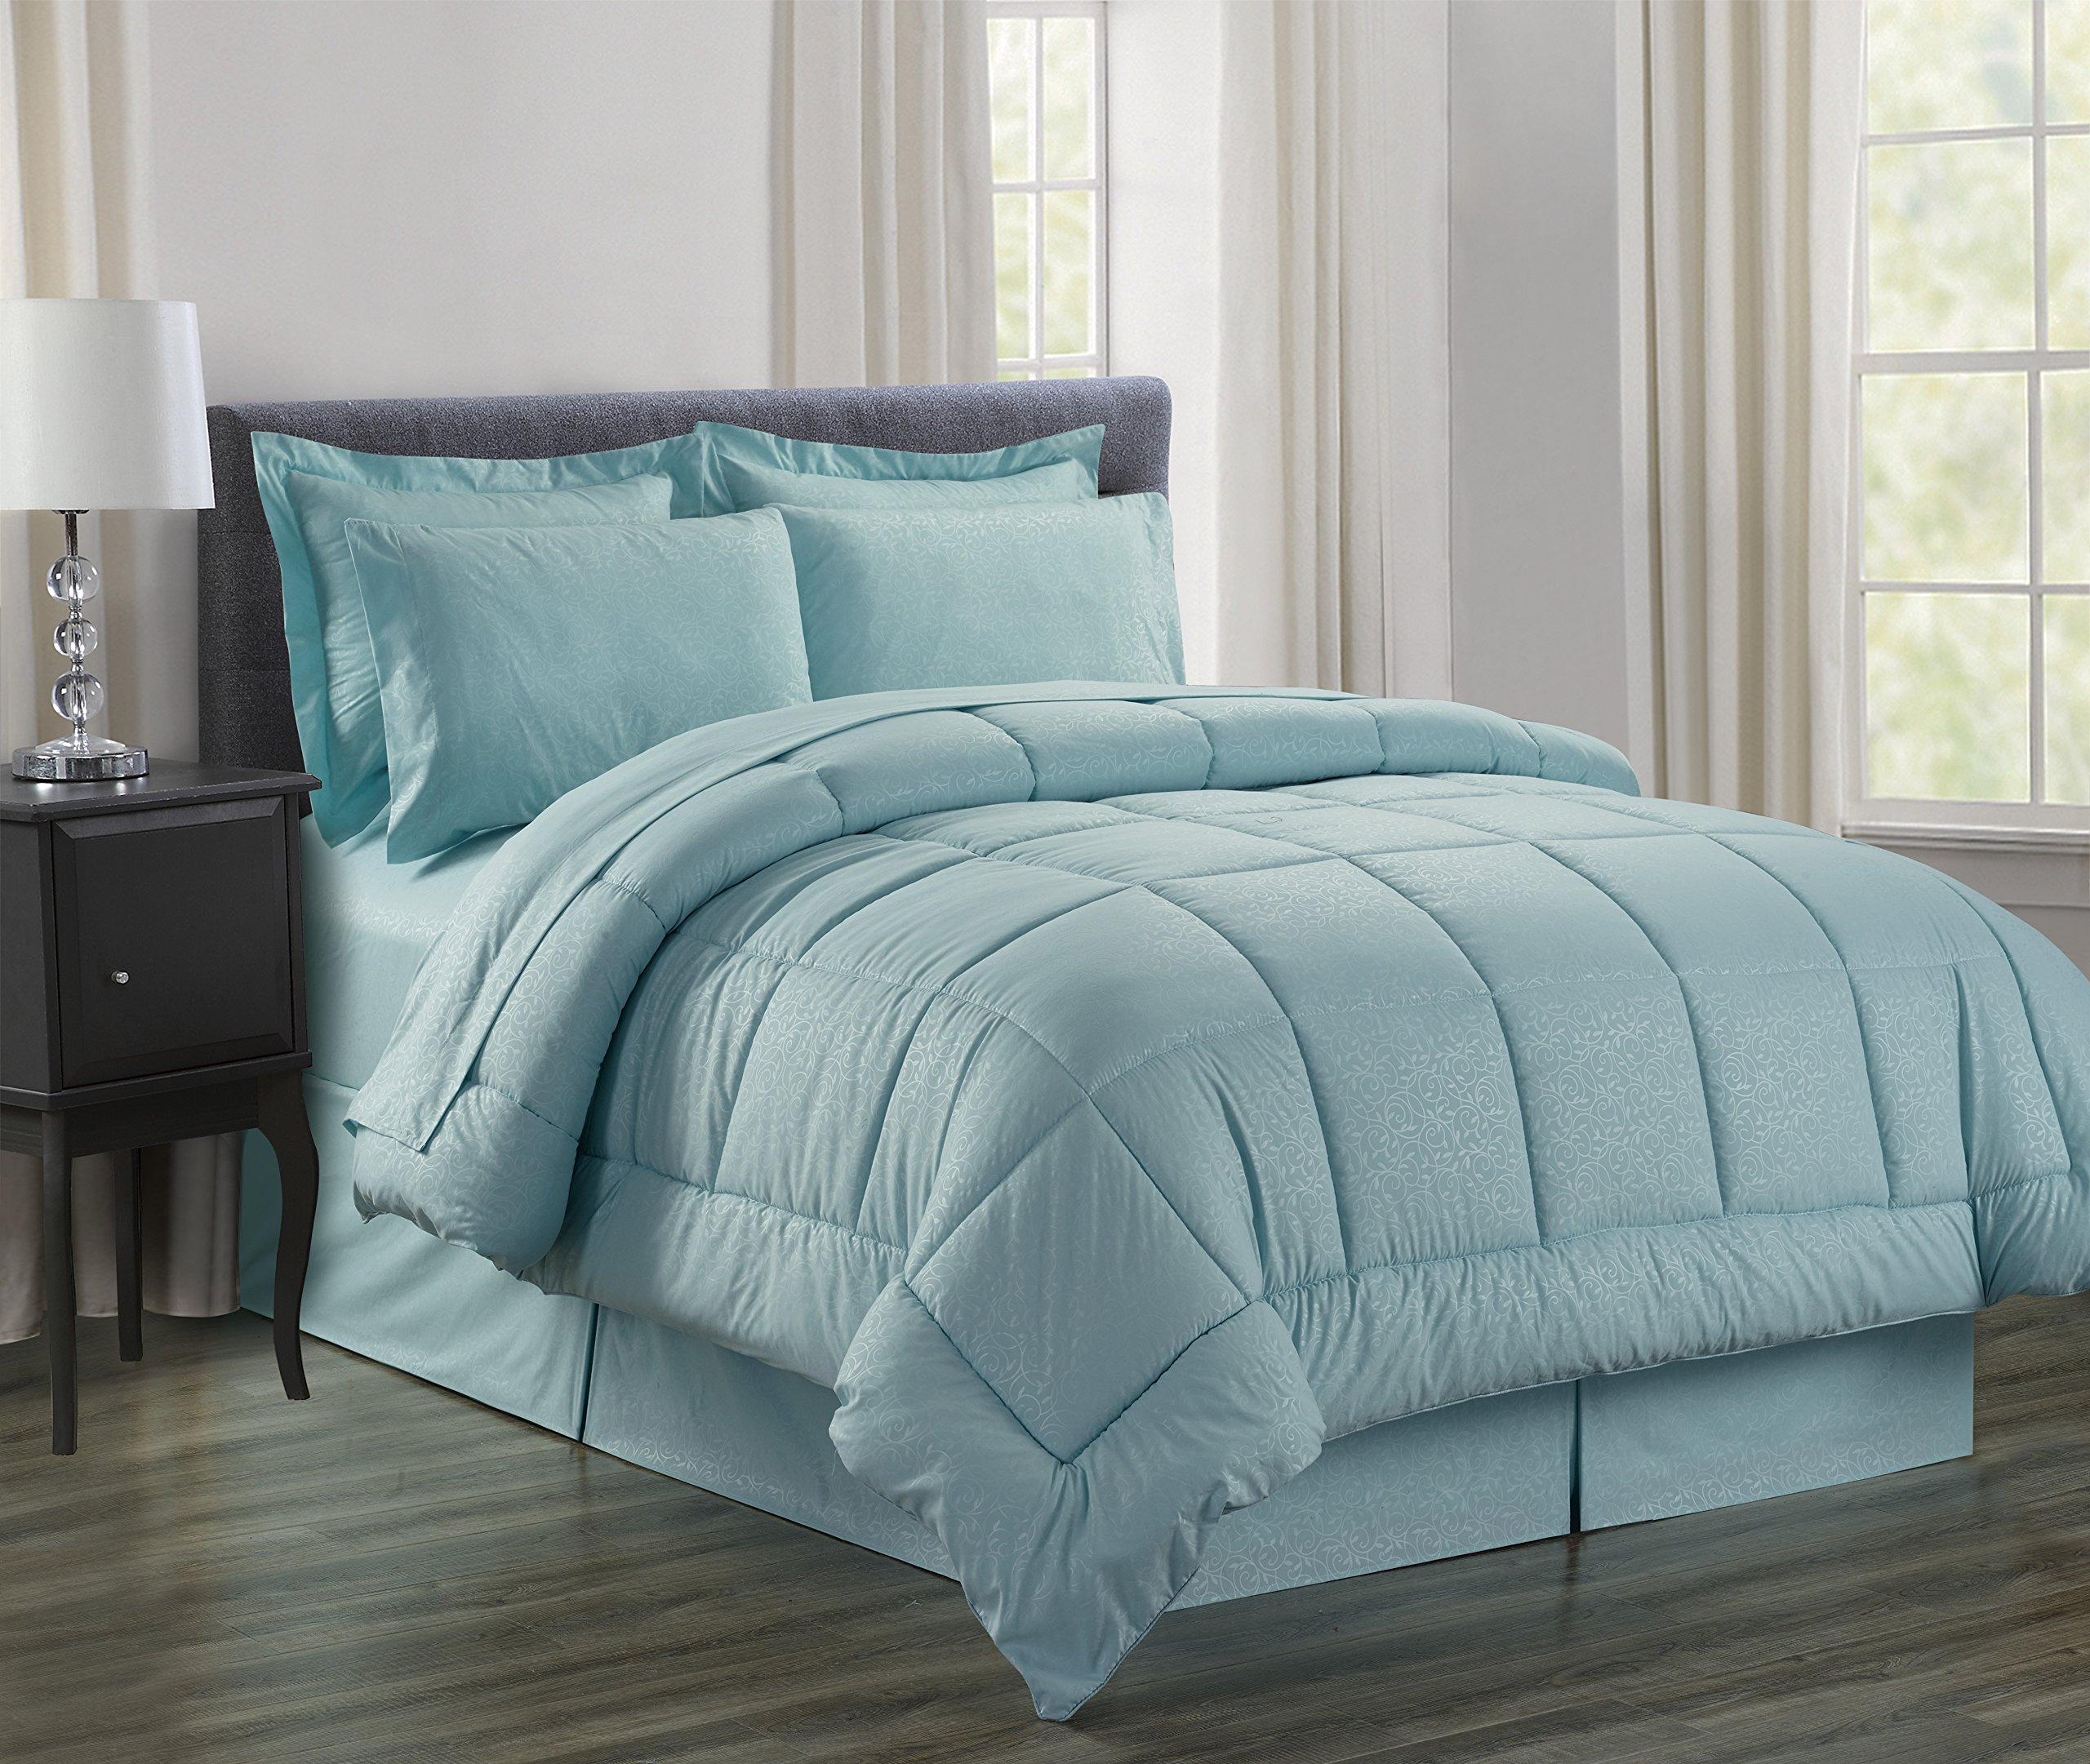 Sweet Home Collection 8Piece Bed in A Bag with Dobby Stripe Comforter, Sheet Set, Bed Skirt, Sham Set - Queen, Vine Turquoise,Queen